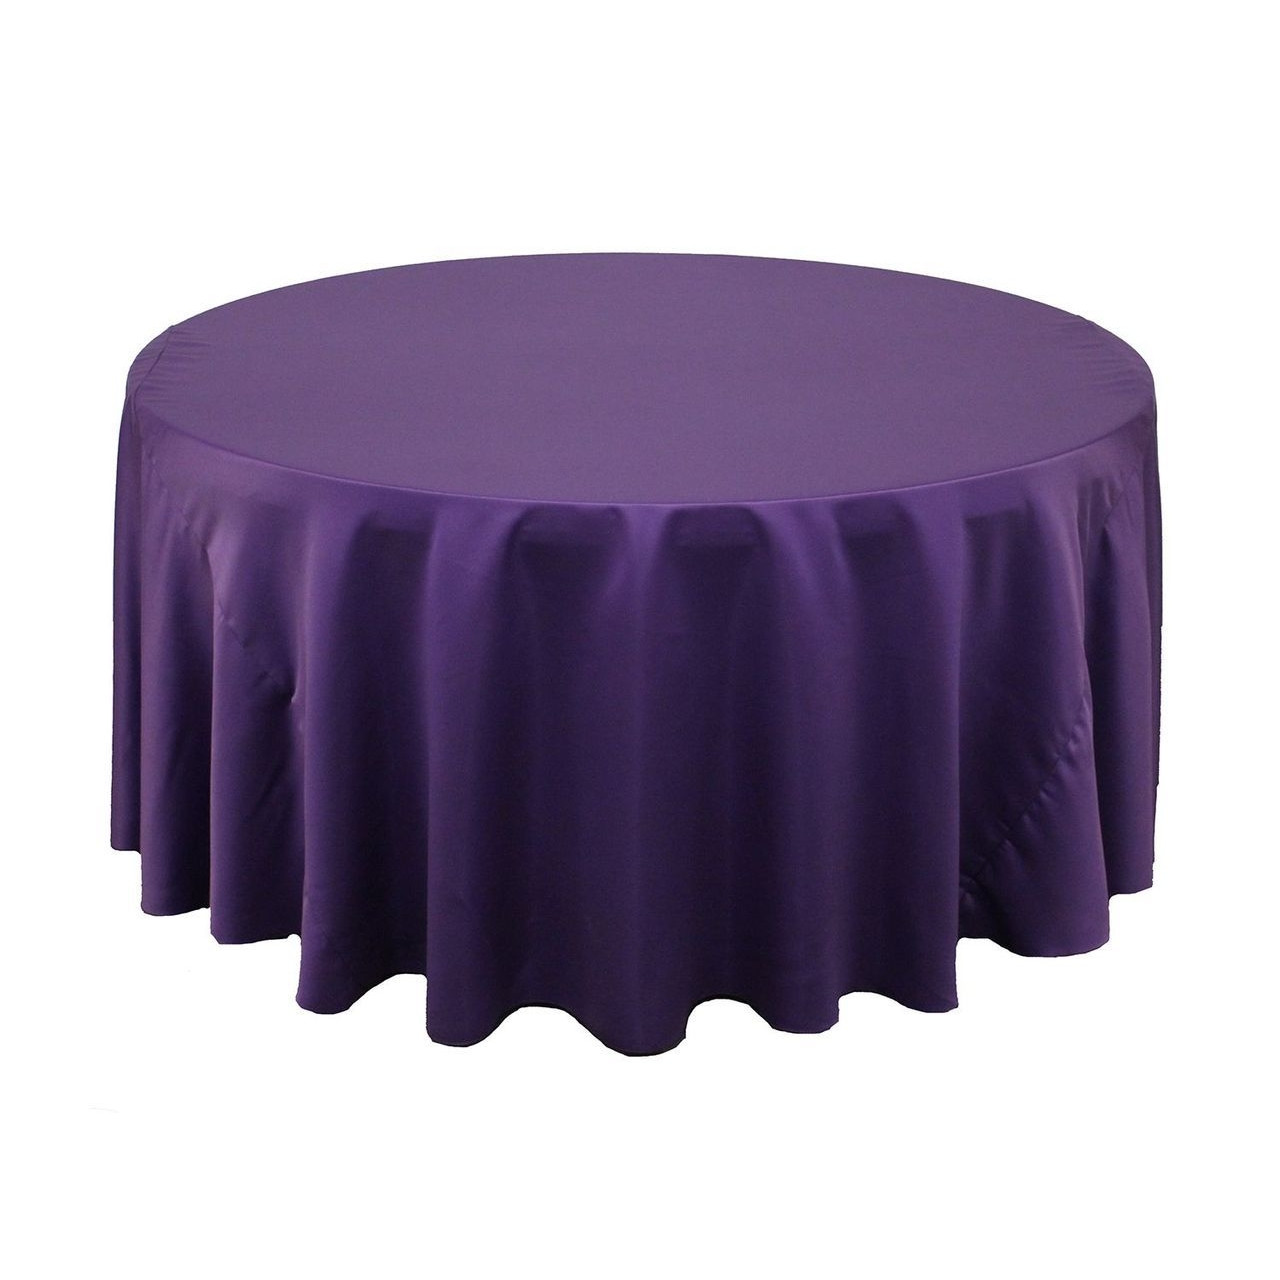 Superbe 132 Inch Lu0027amour Round Tablecloth Purple | Wholesale Wedding Tablecloths